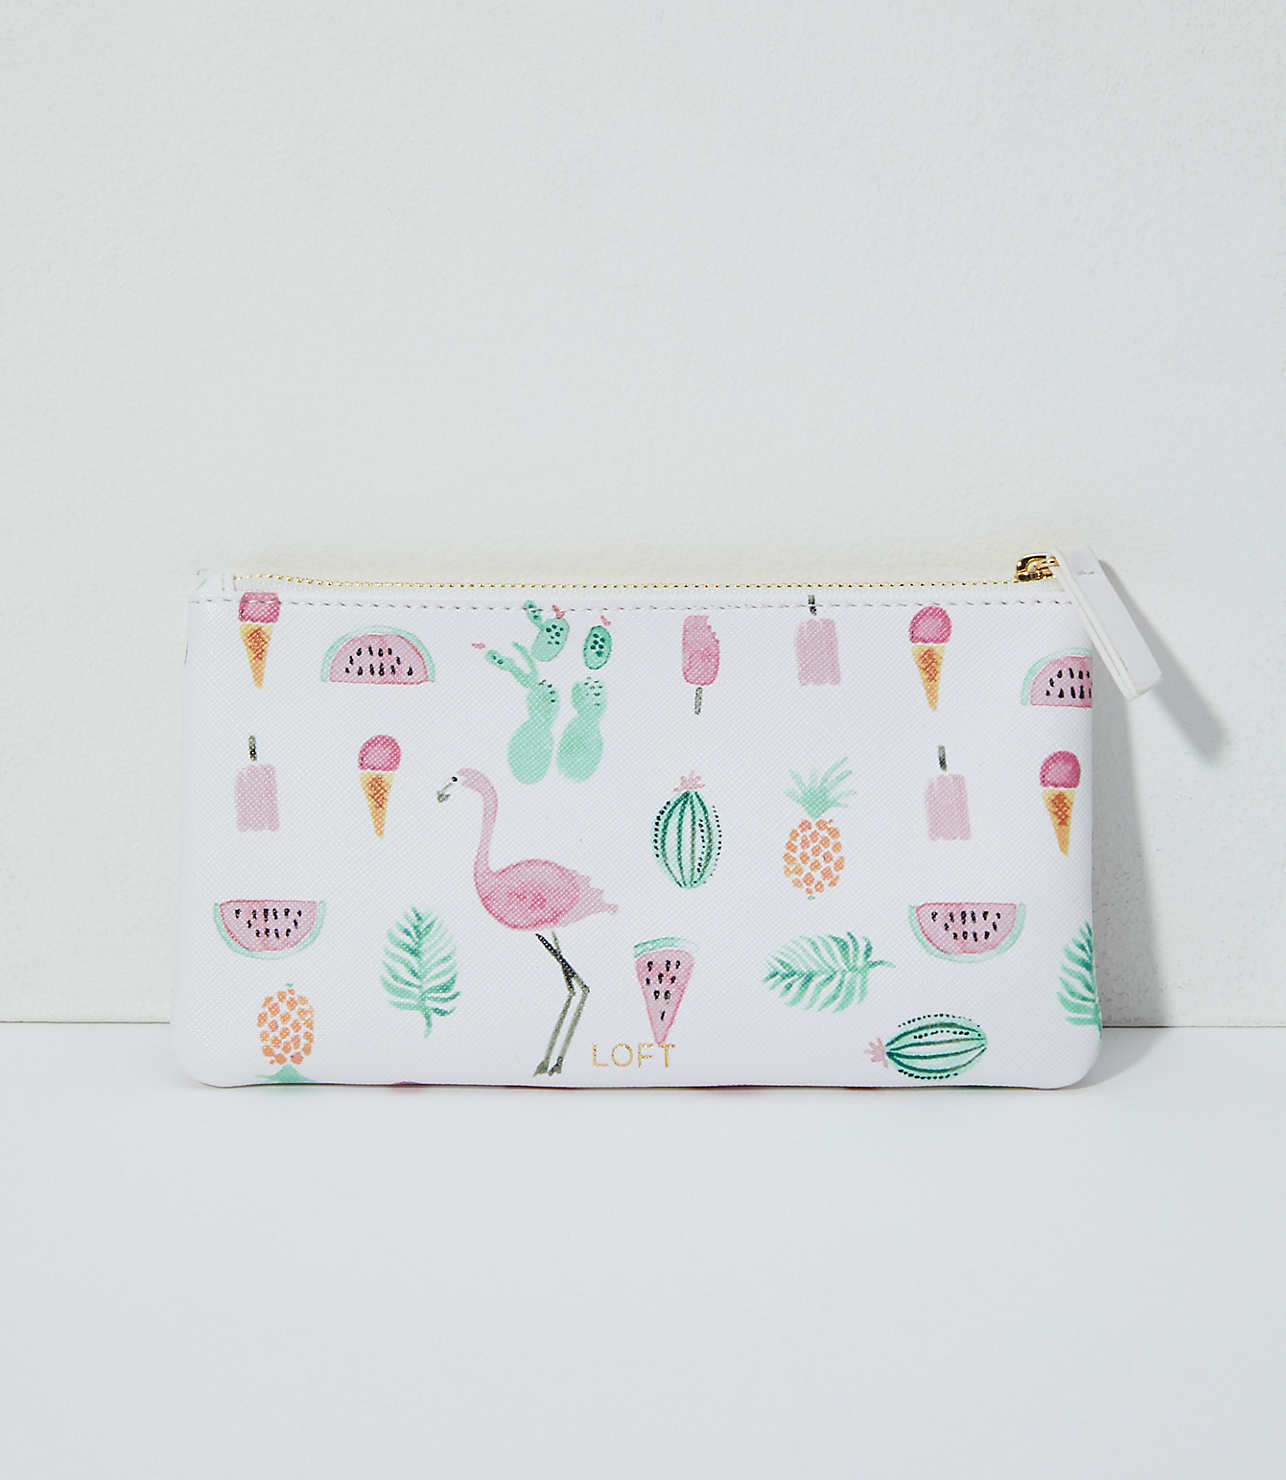 Flamingo Sunglasses Case by Loft